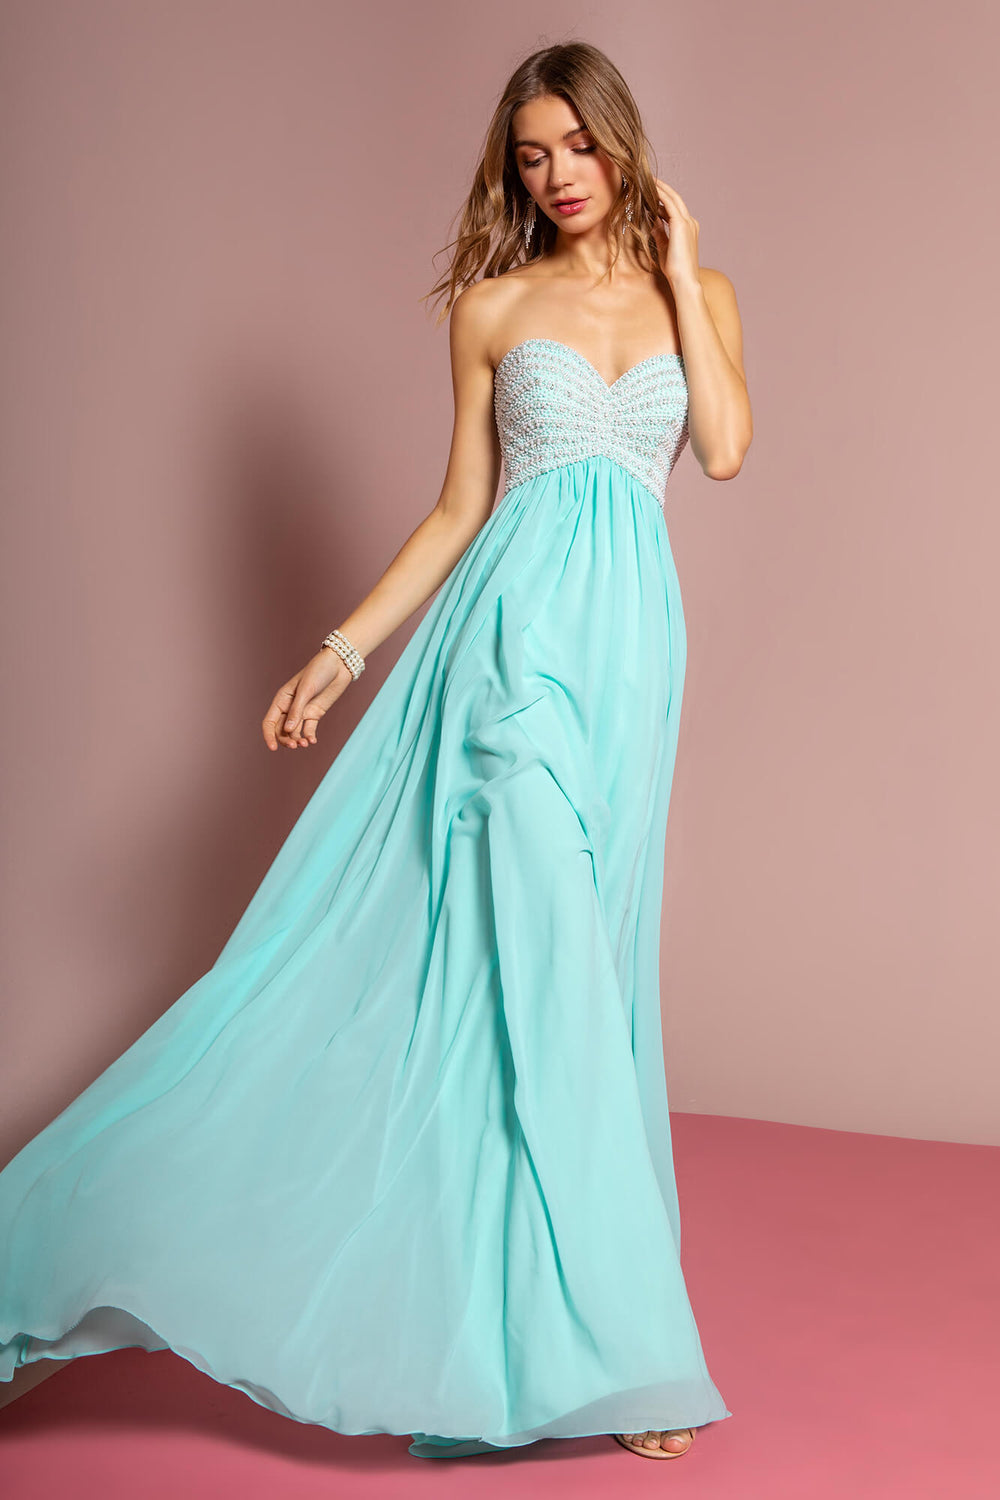 Strapless Long Prom Evening Gown - The Dress Outlet Mint